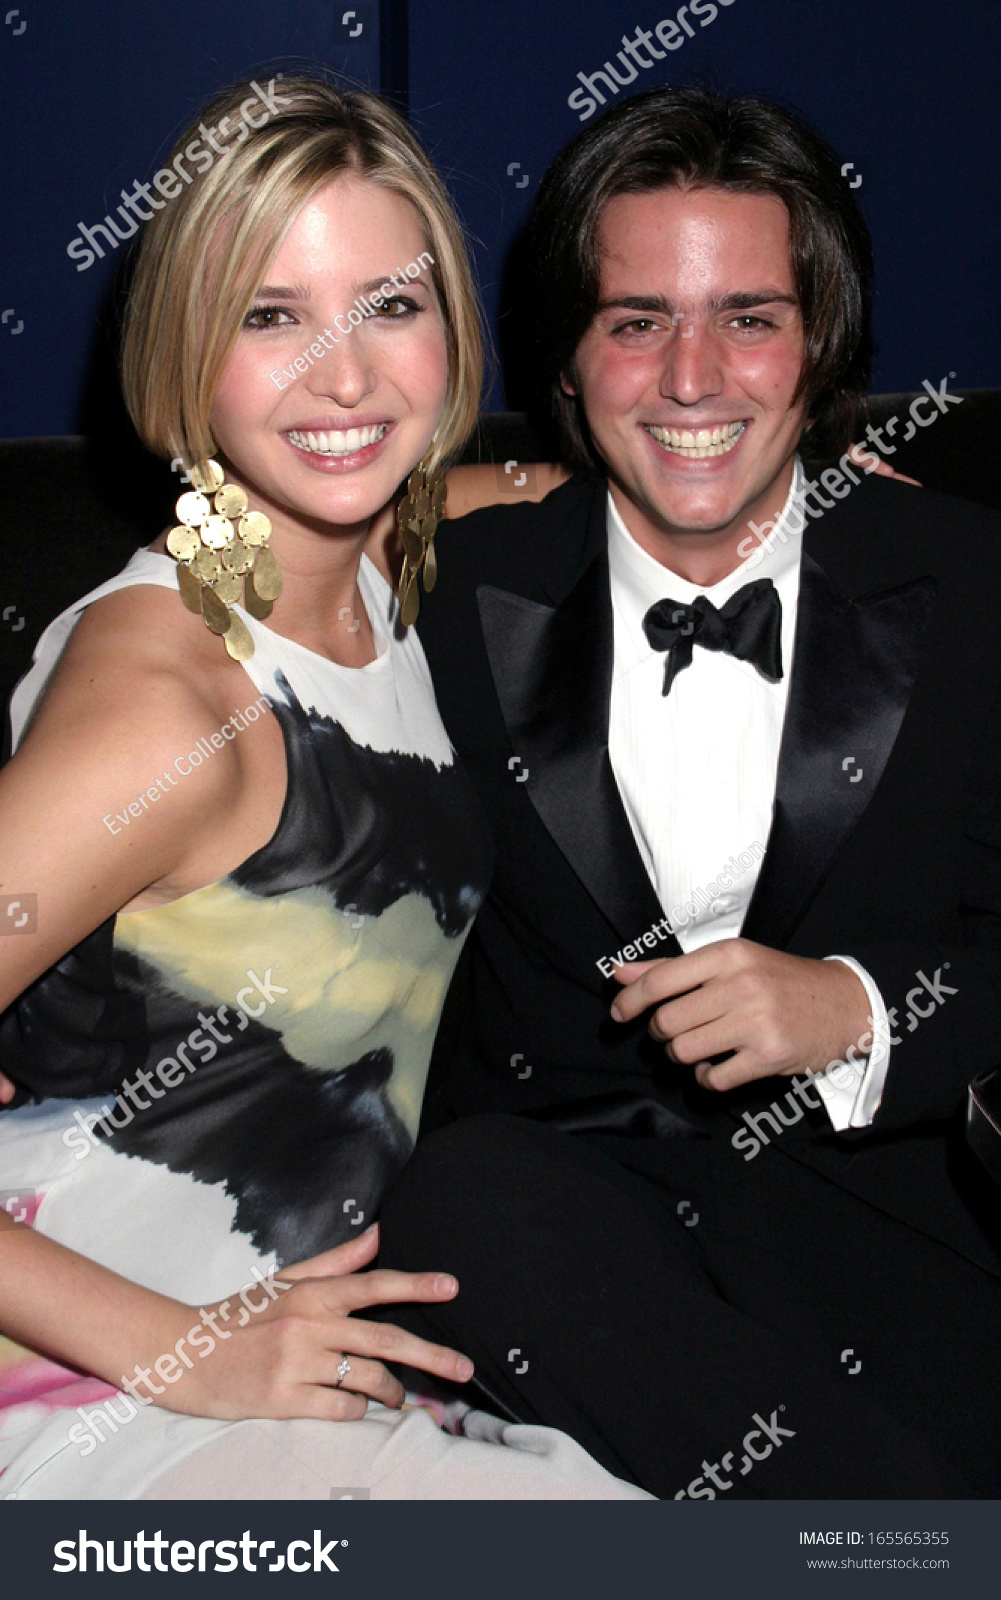 Ivanka Trump, James Bingo Gubelmann at the after-party for New York ...